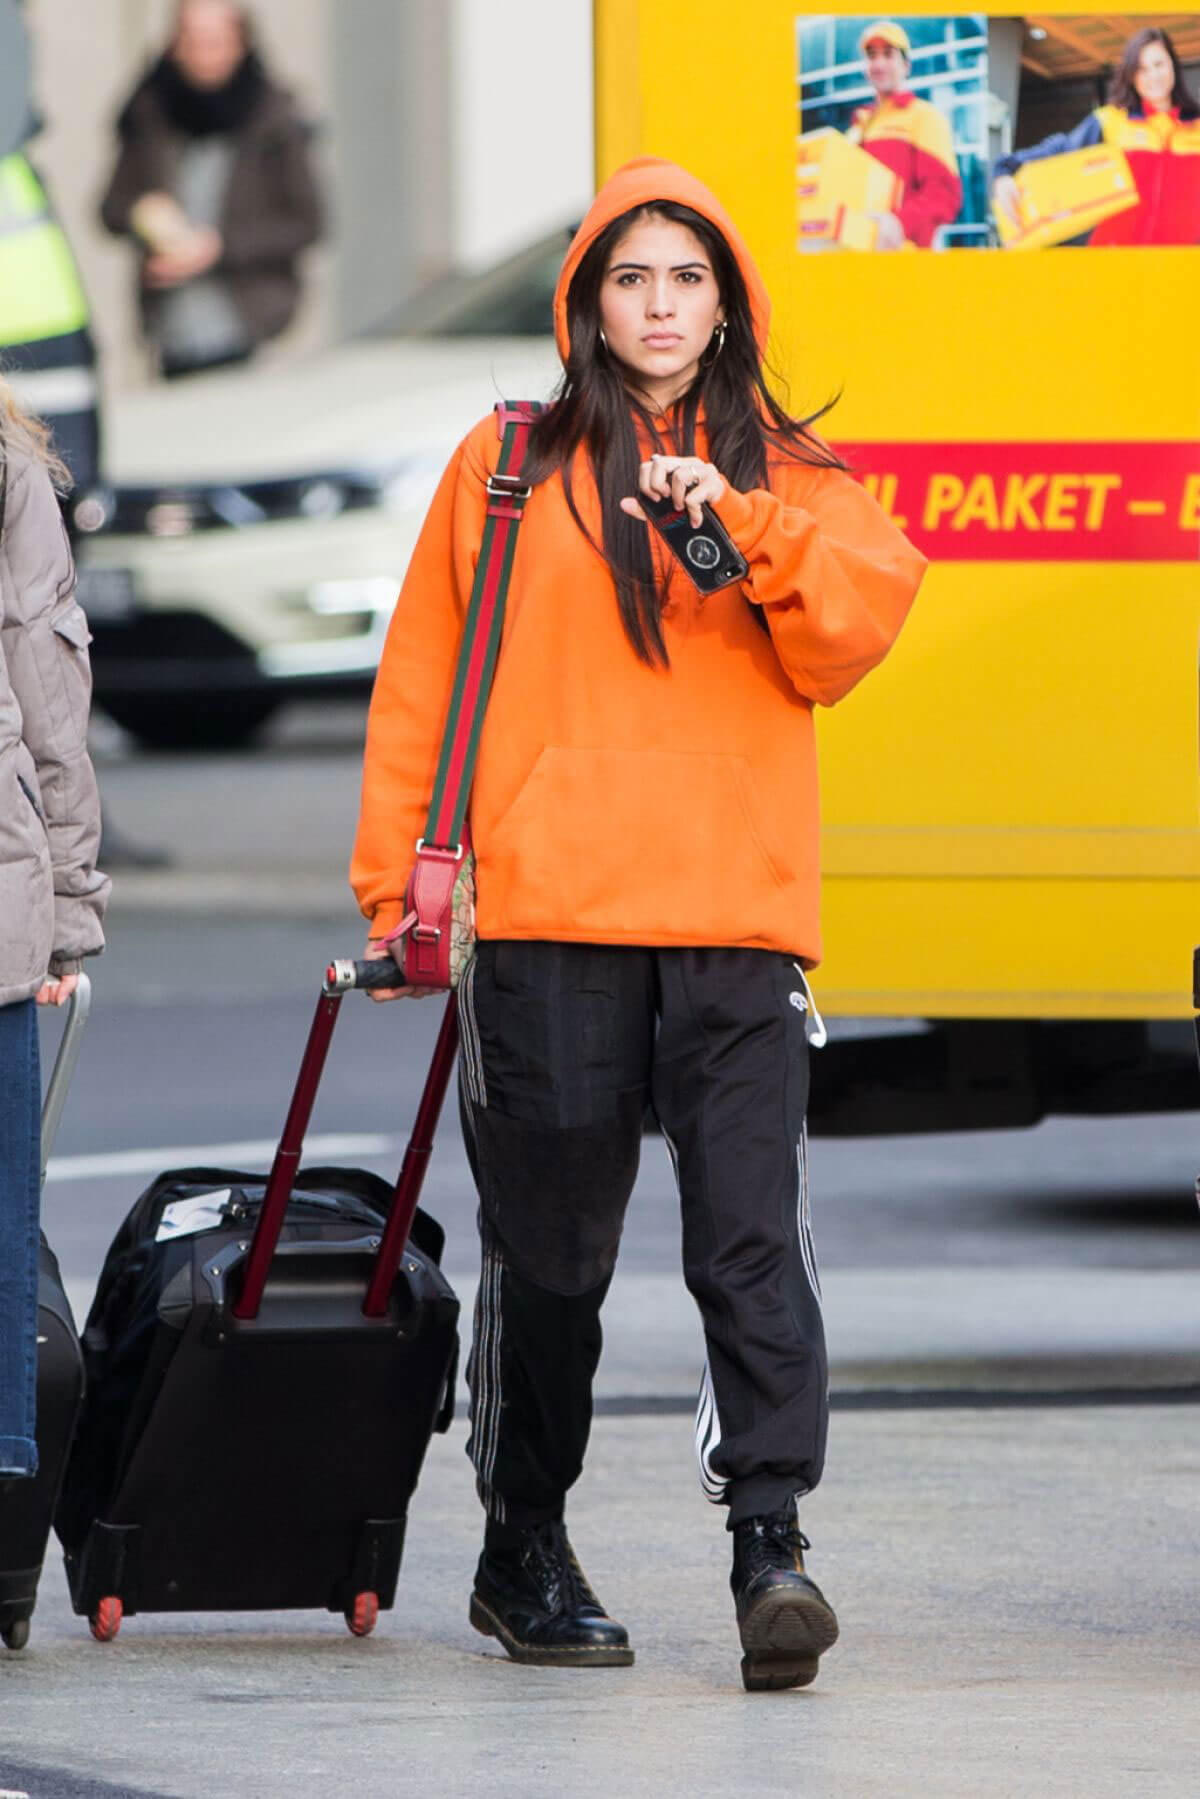 Kim Turnbull wears Orange Color Hoodie and Black Lower at Tegel Airport in Berlin